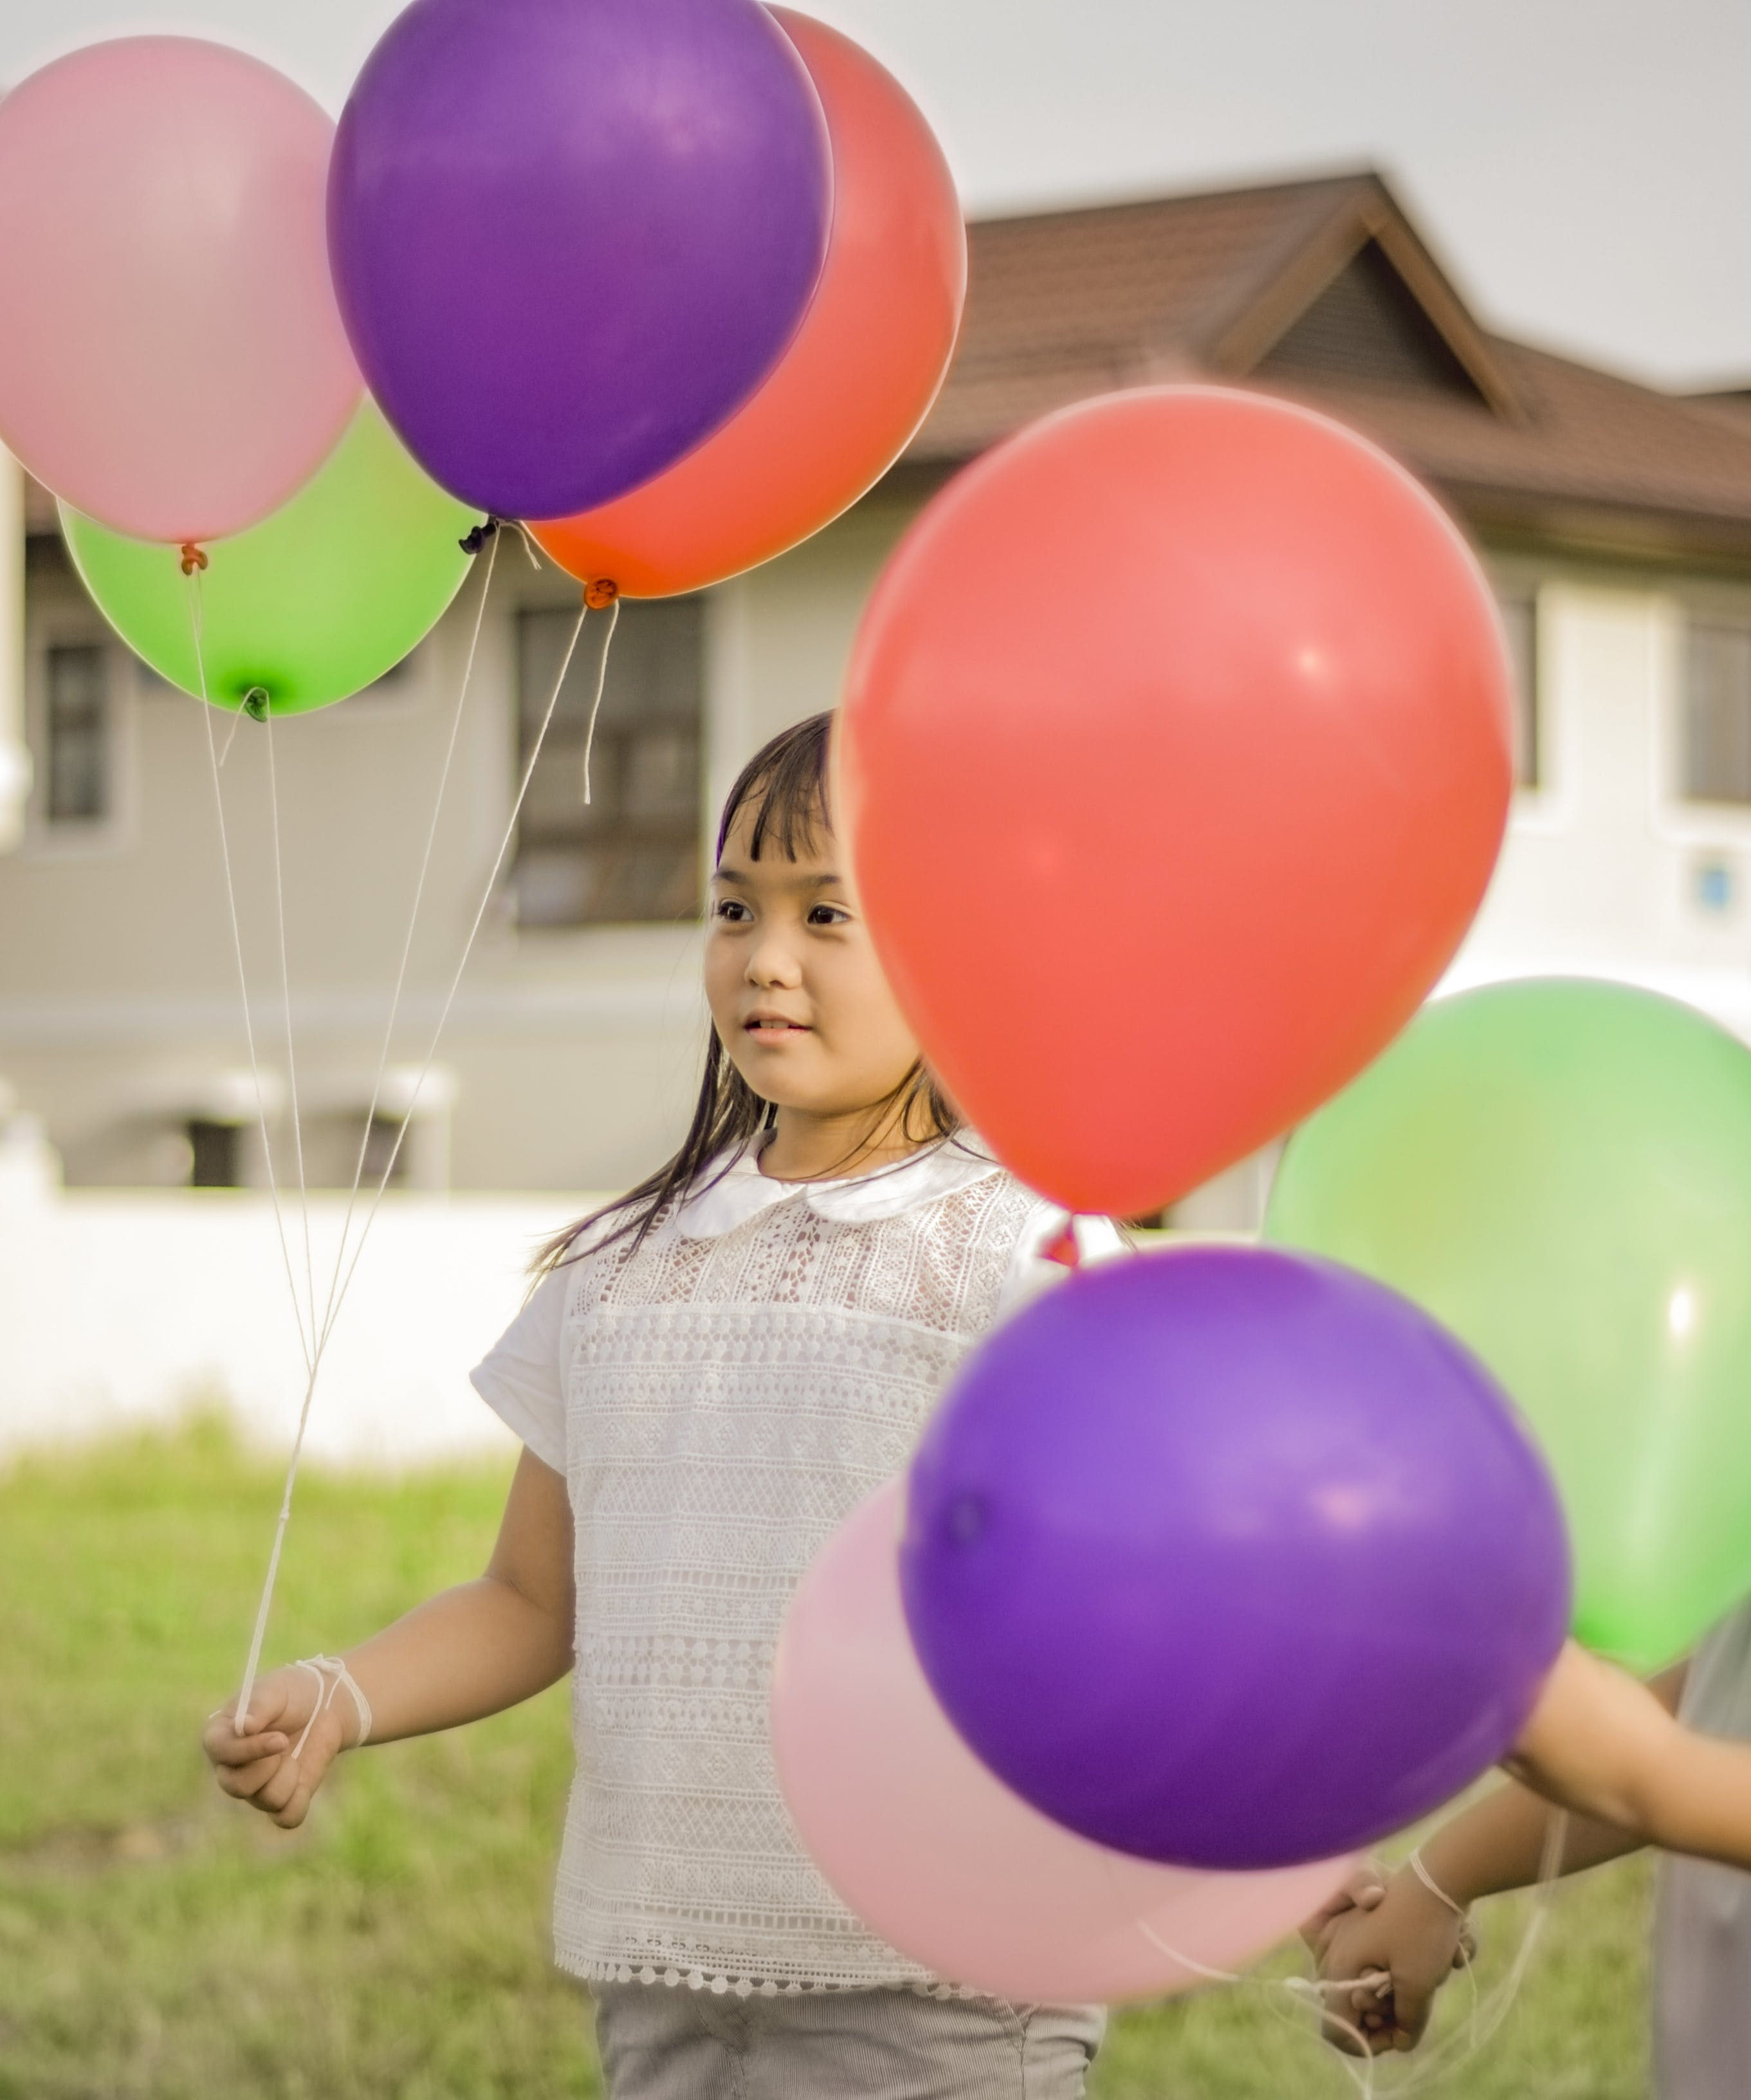 Photography of a Girl Holding Balloons